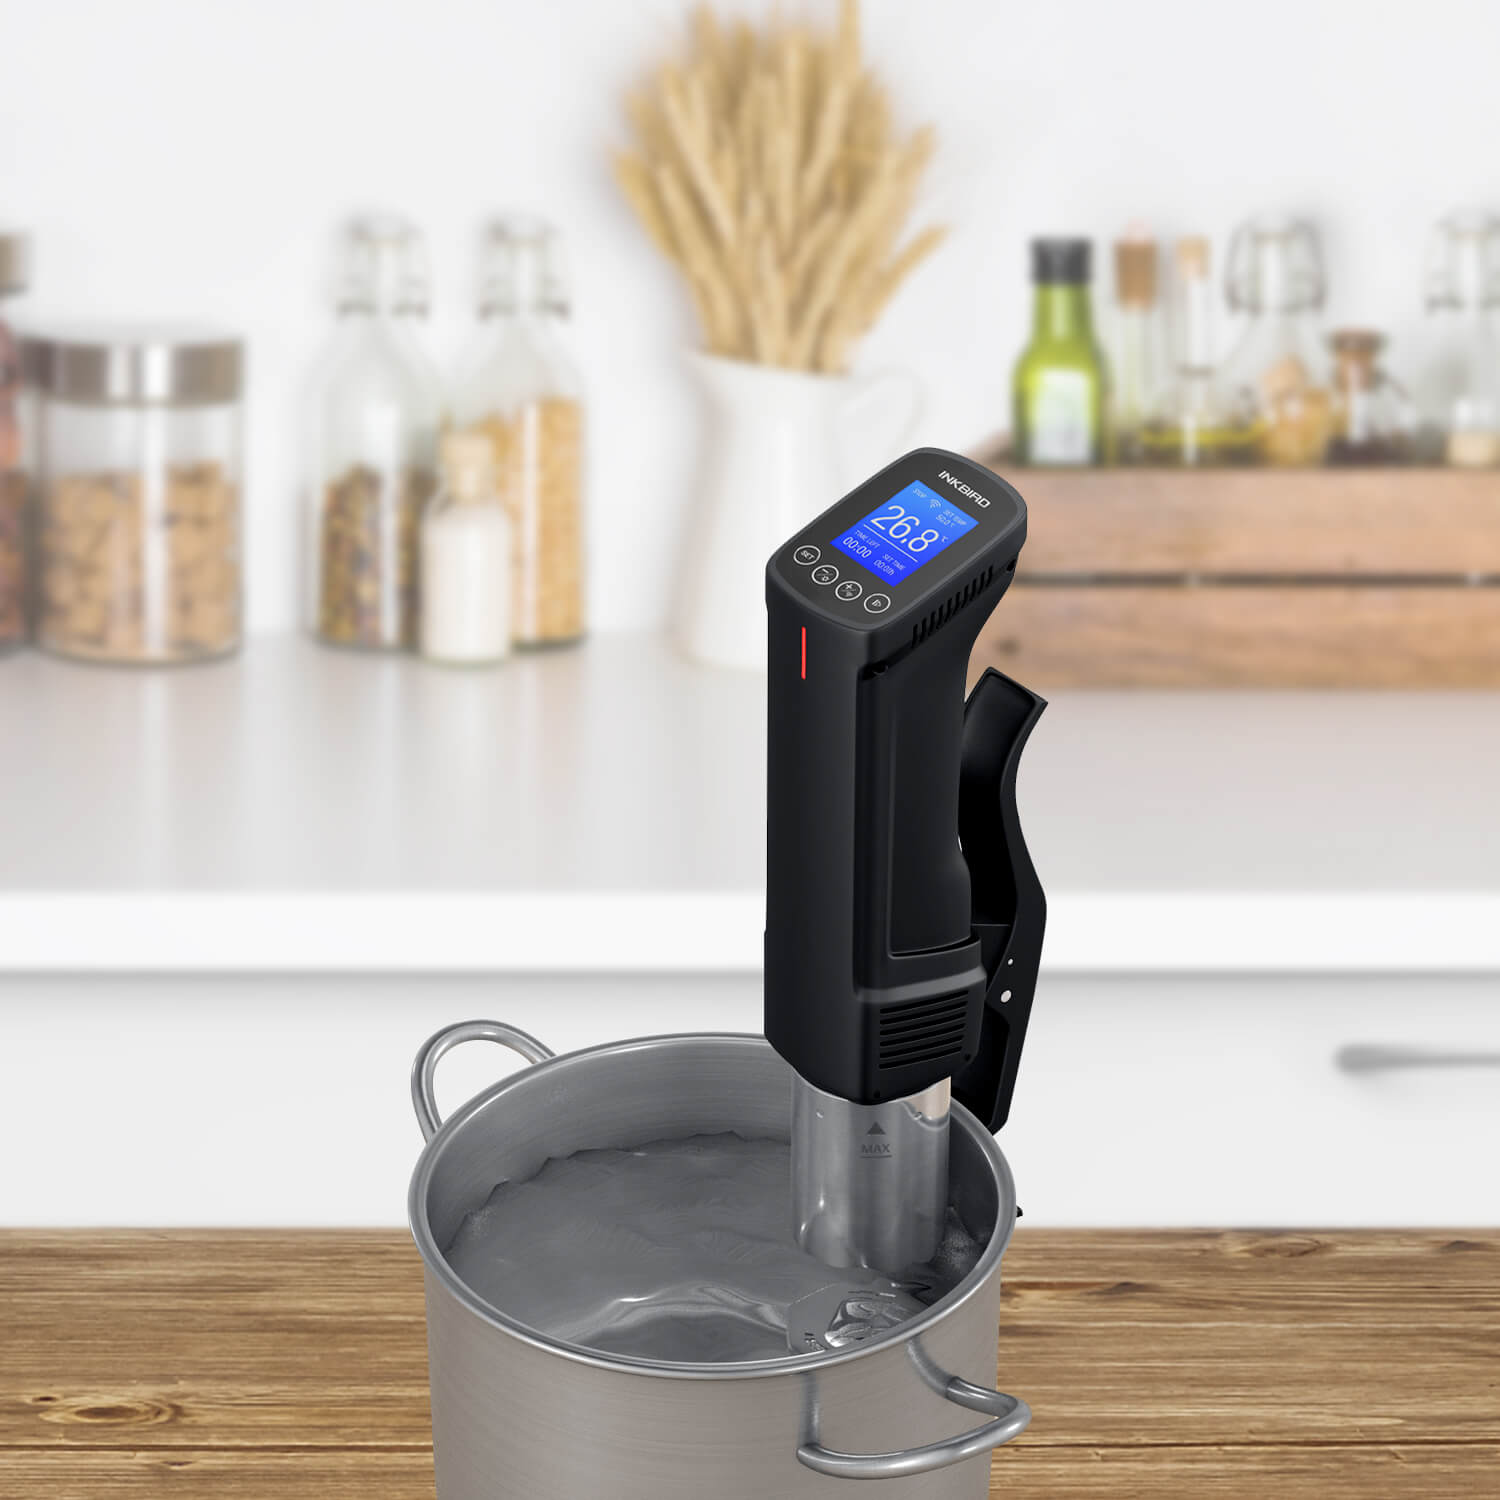 Inkbird Precision WiFi Sous Vide Cooker ISV-100W with Thermal Immersion Circulator